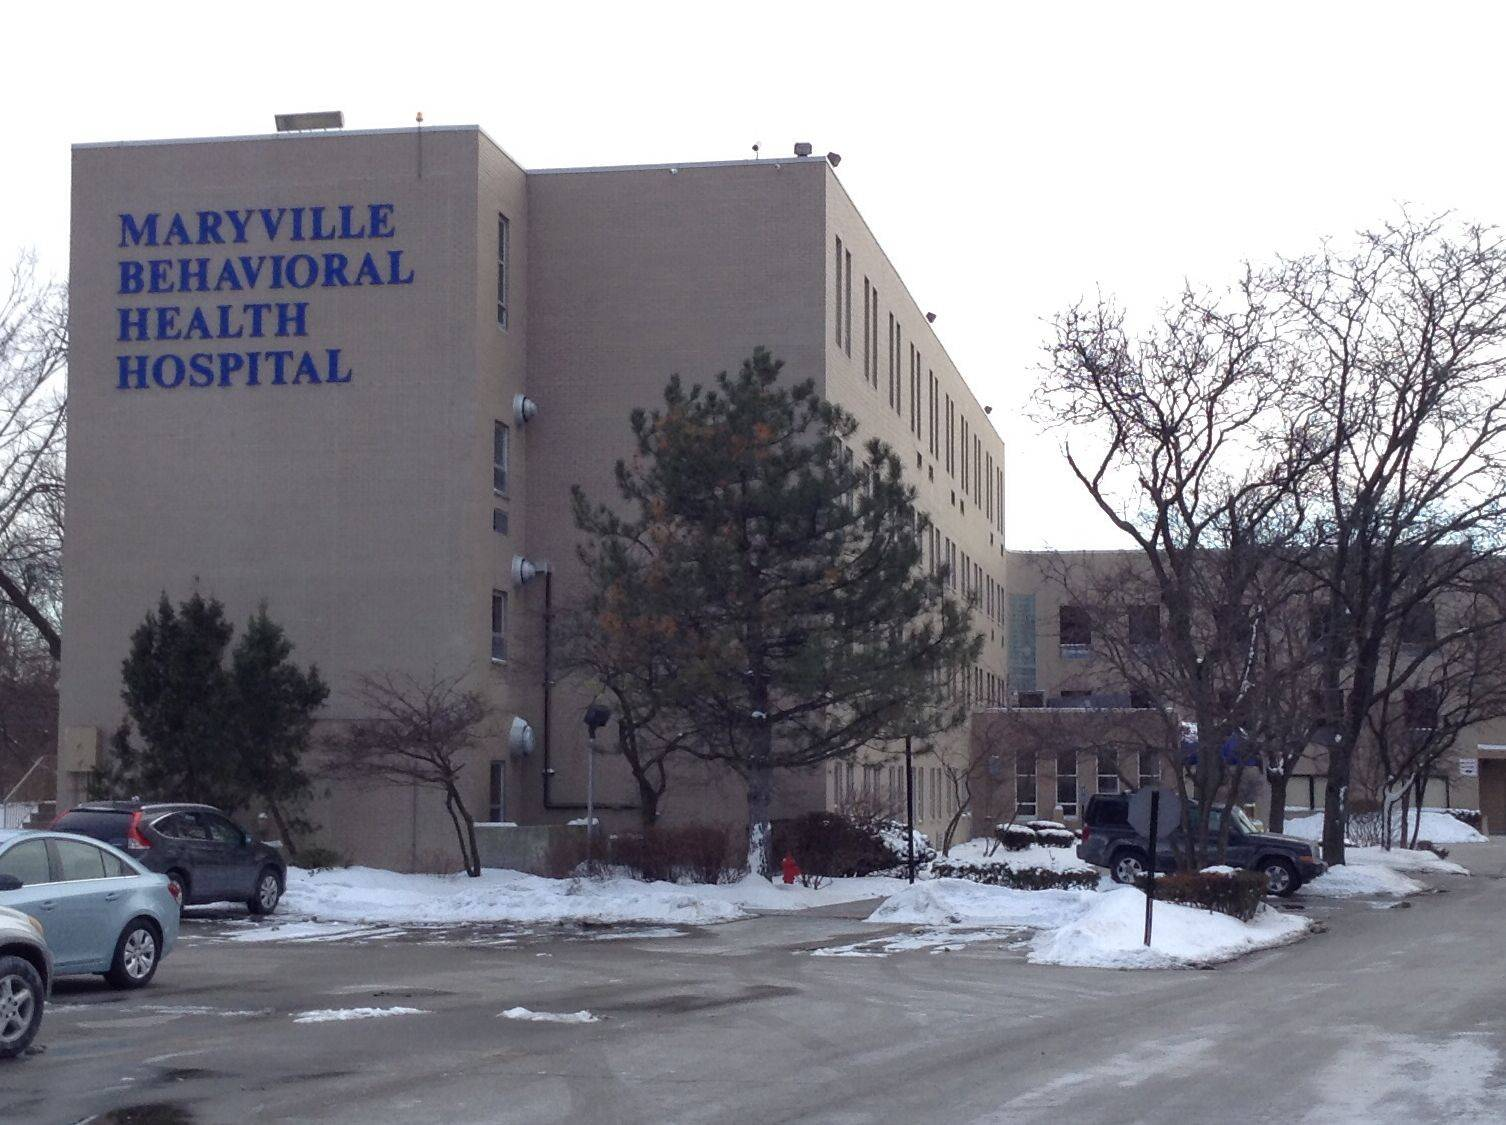 A for-profit company in New York has offered $23 million to purchase the Maryville Behavioral Health Hospital in Des Plaines. The deal is contingent on state approval.